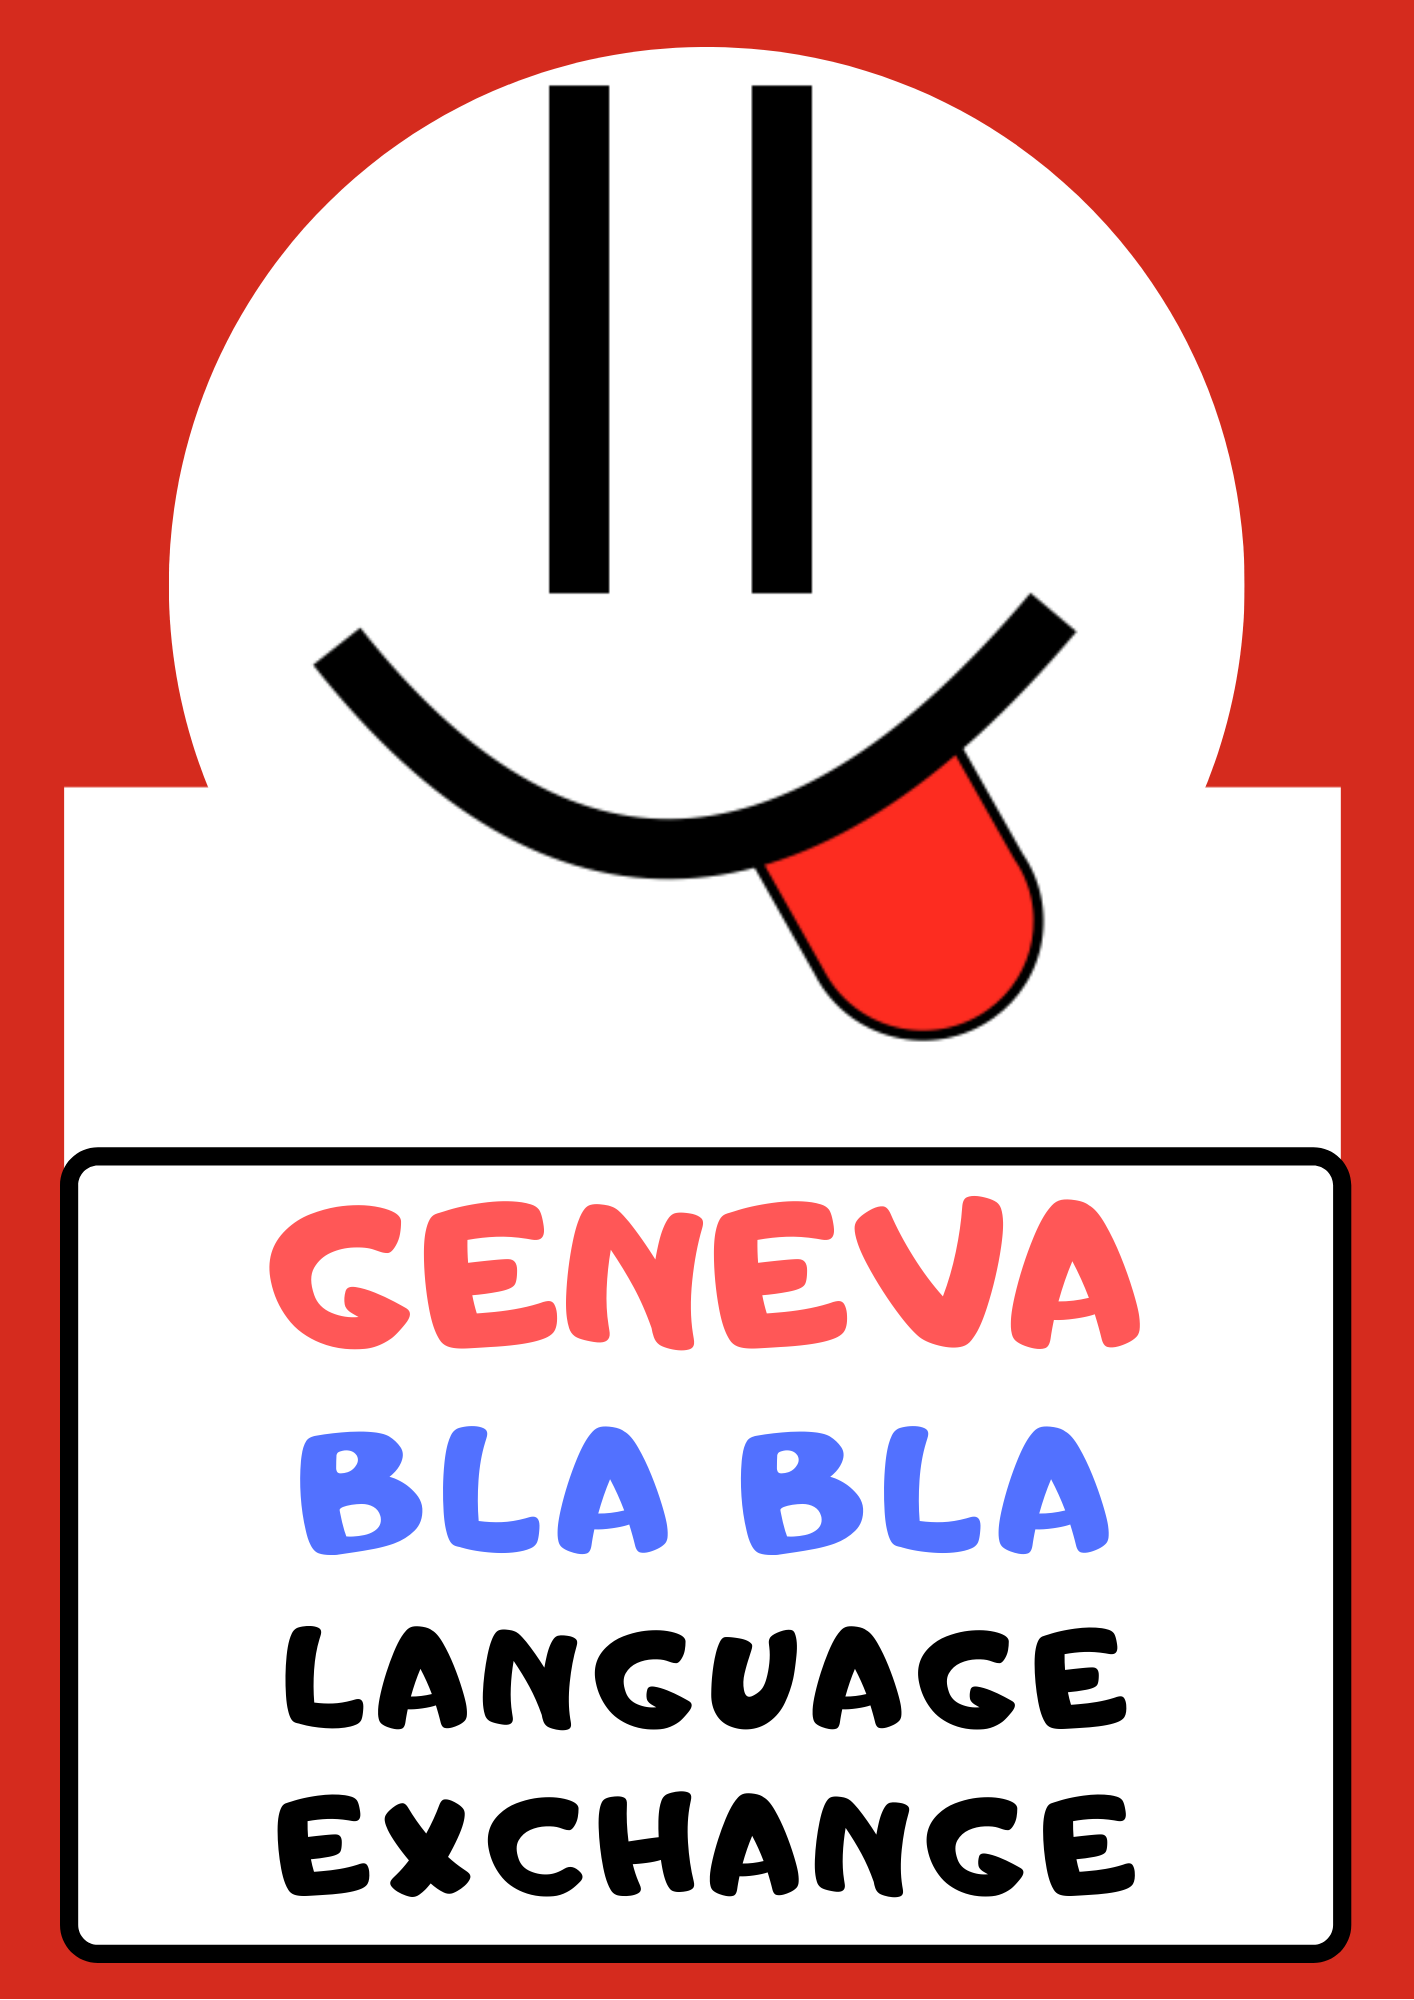 BRNO BLA BLA Language exchange (8)